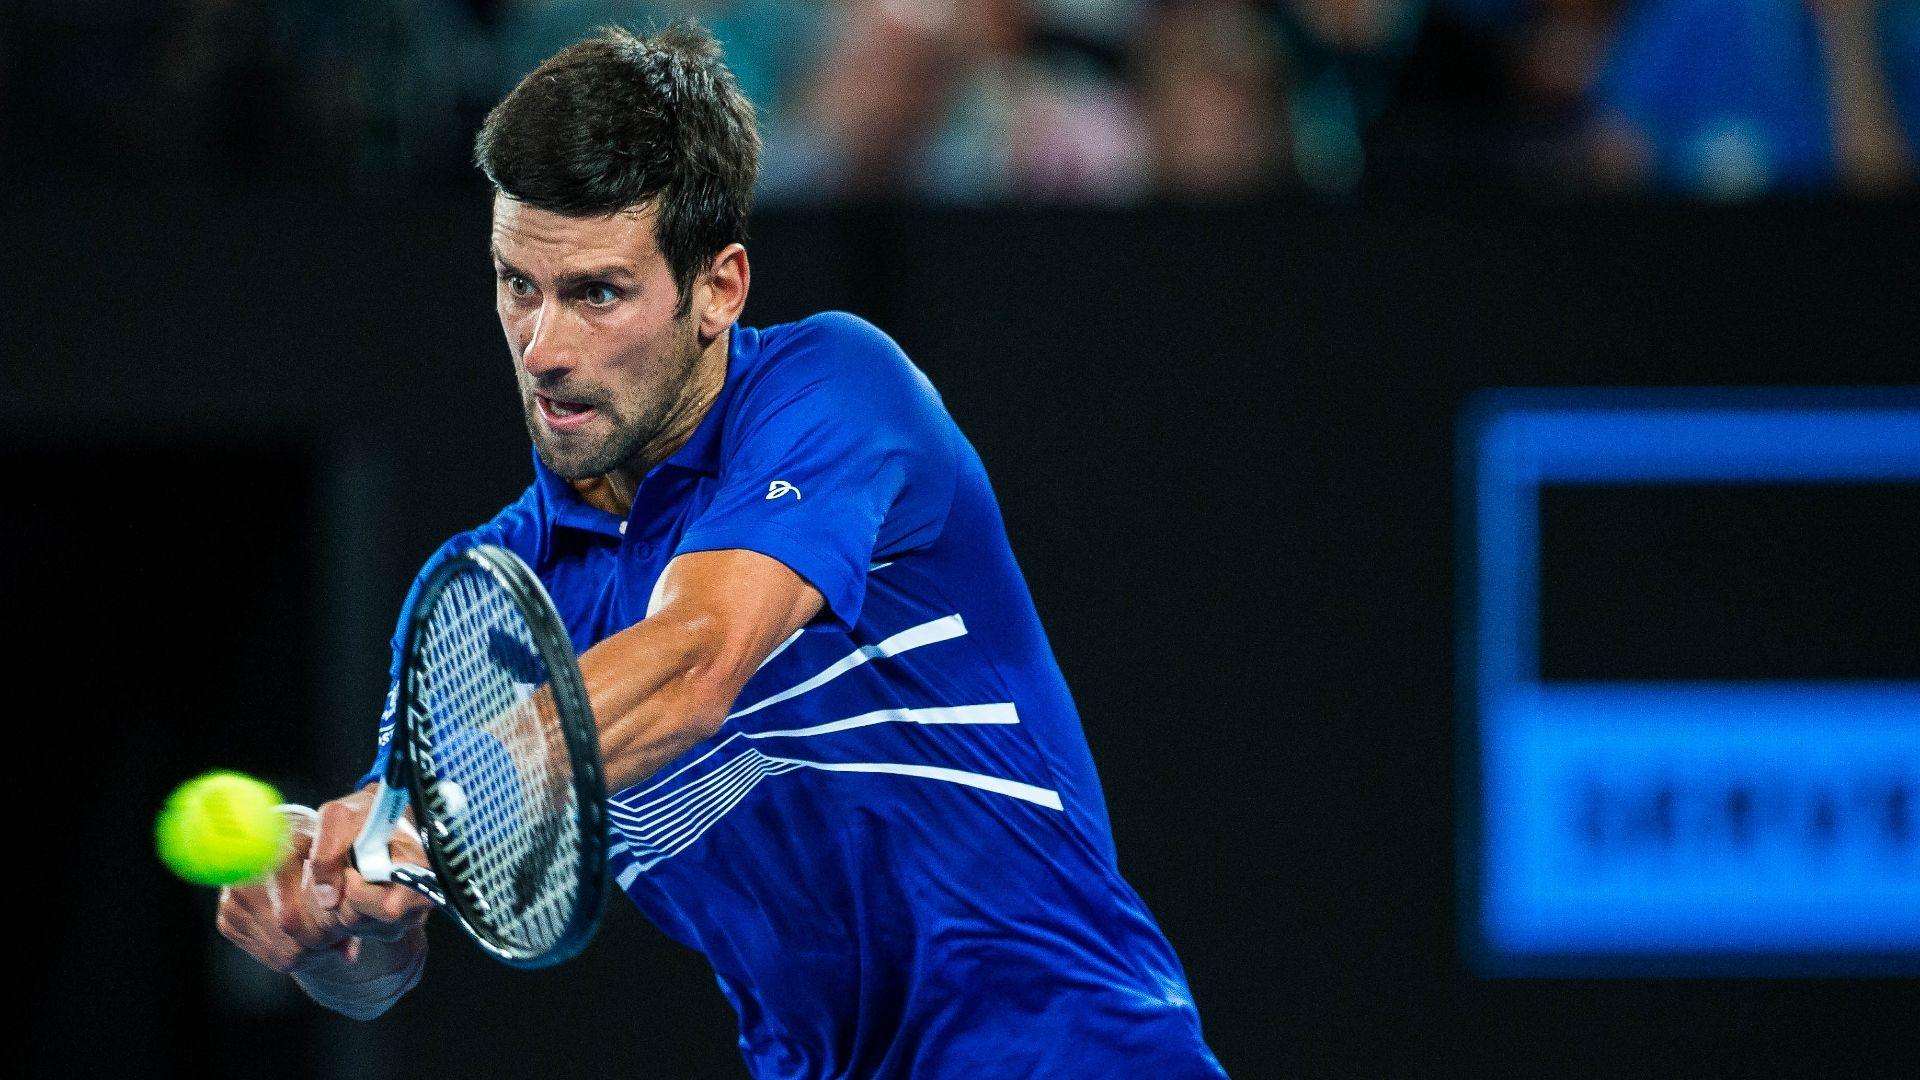 Djokovic cruises into third round in straight sets